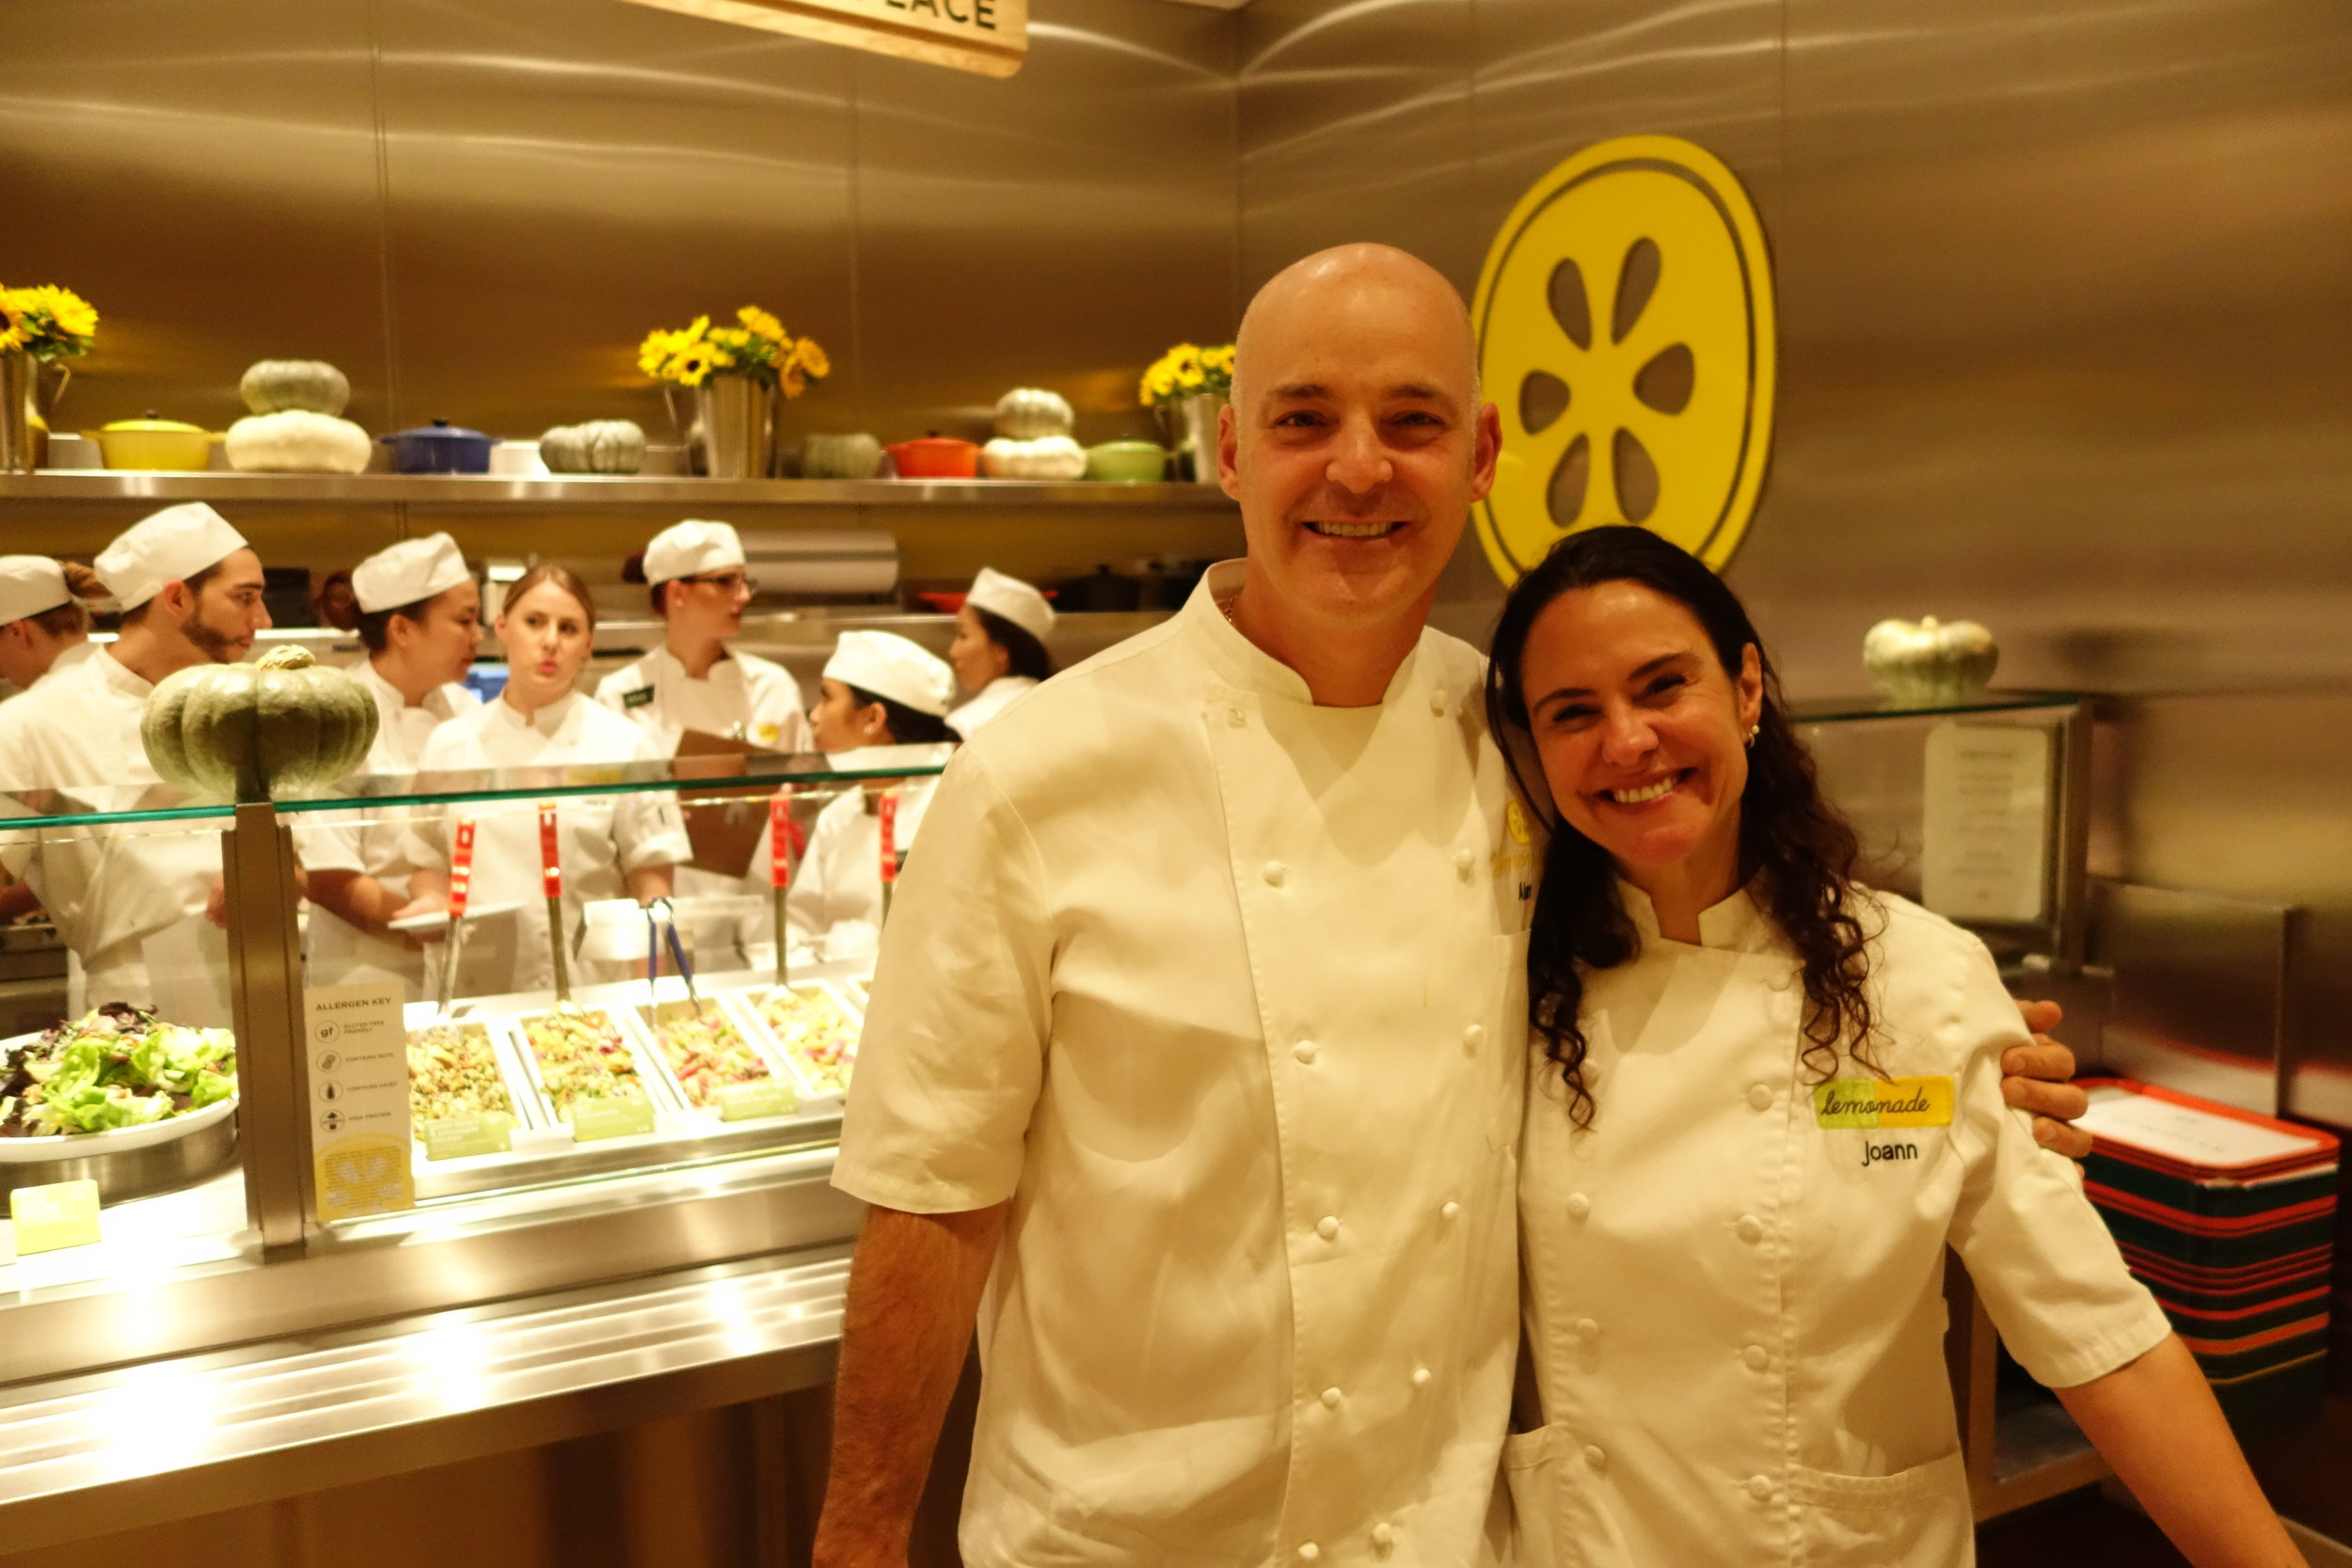 Lemonade Founder & Executive Chef Alan Jackson (left), & Head of Marketing JoAnn Cianciulli (right)